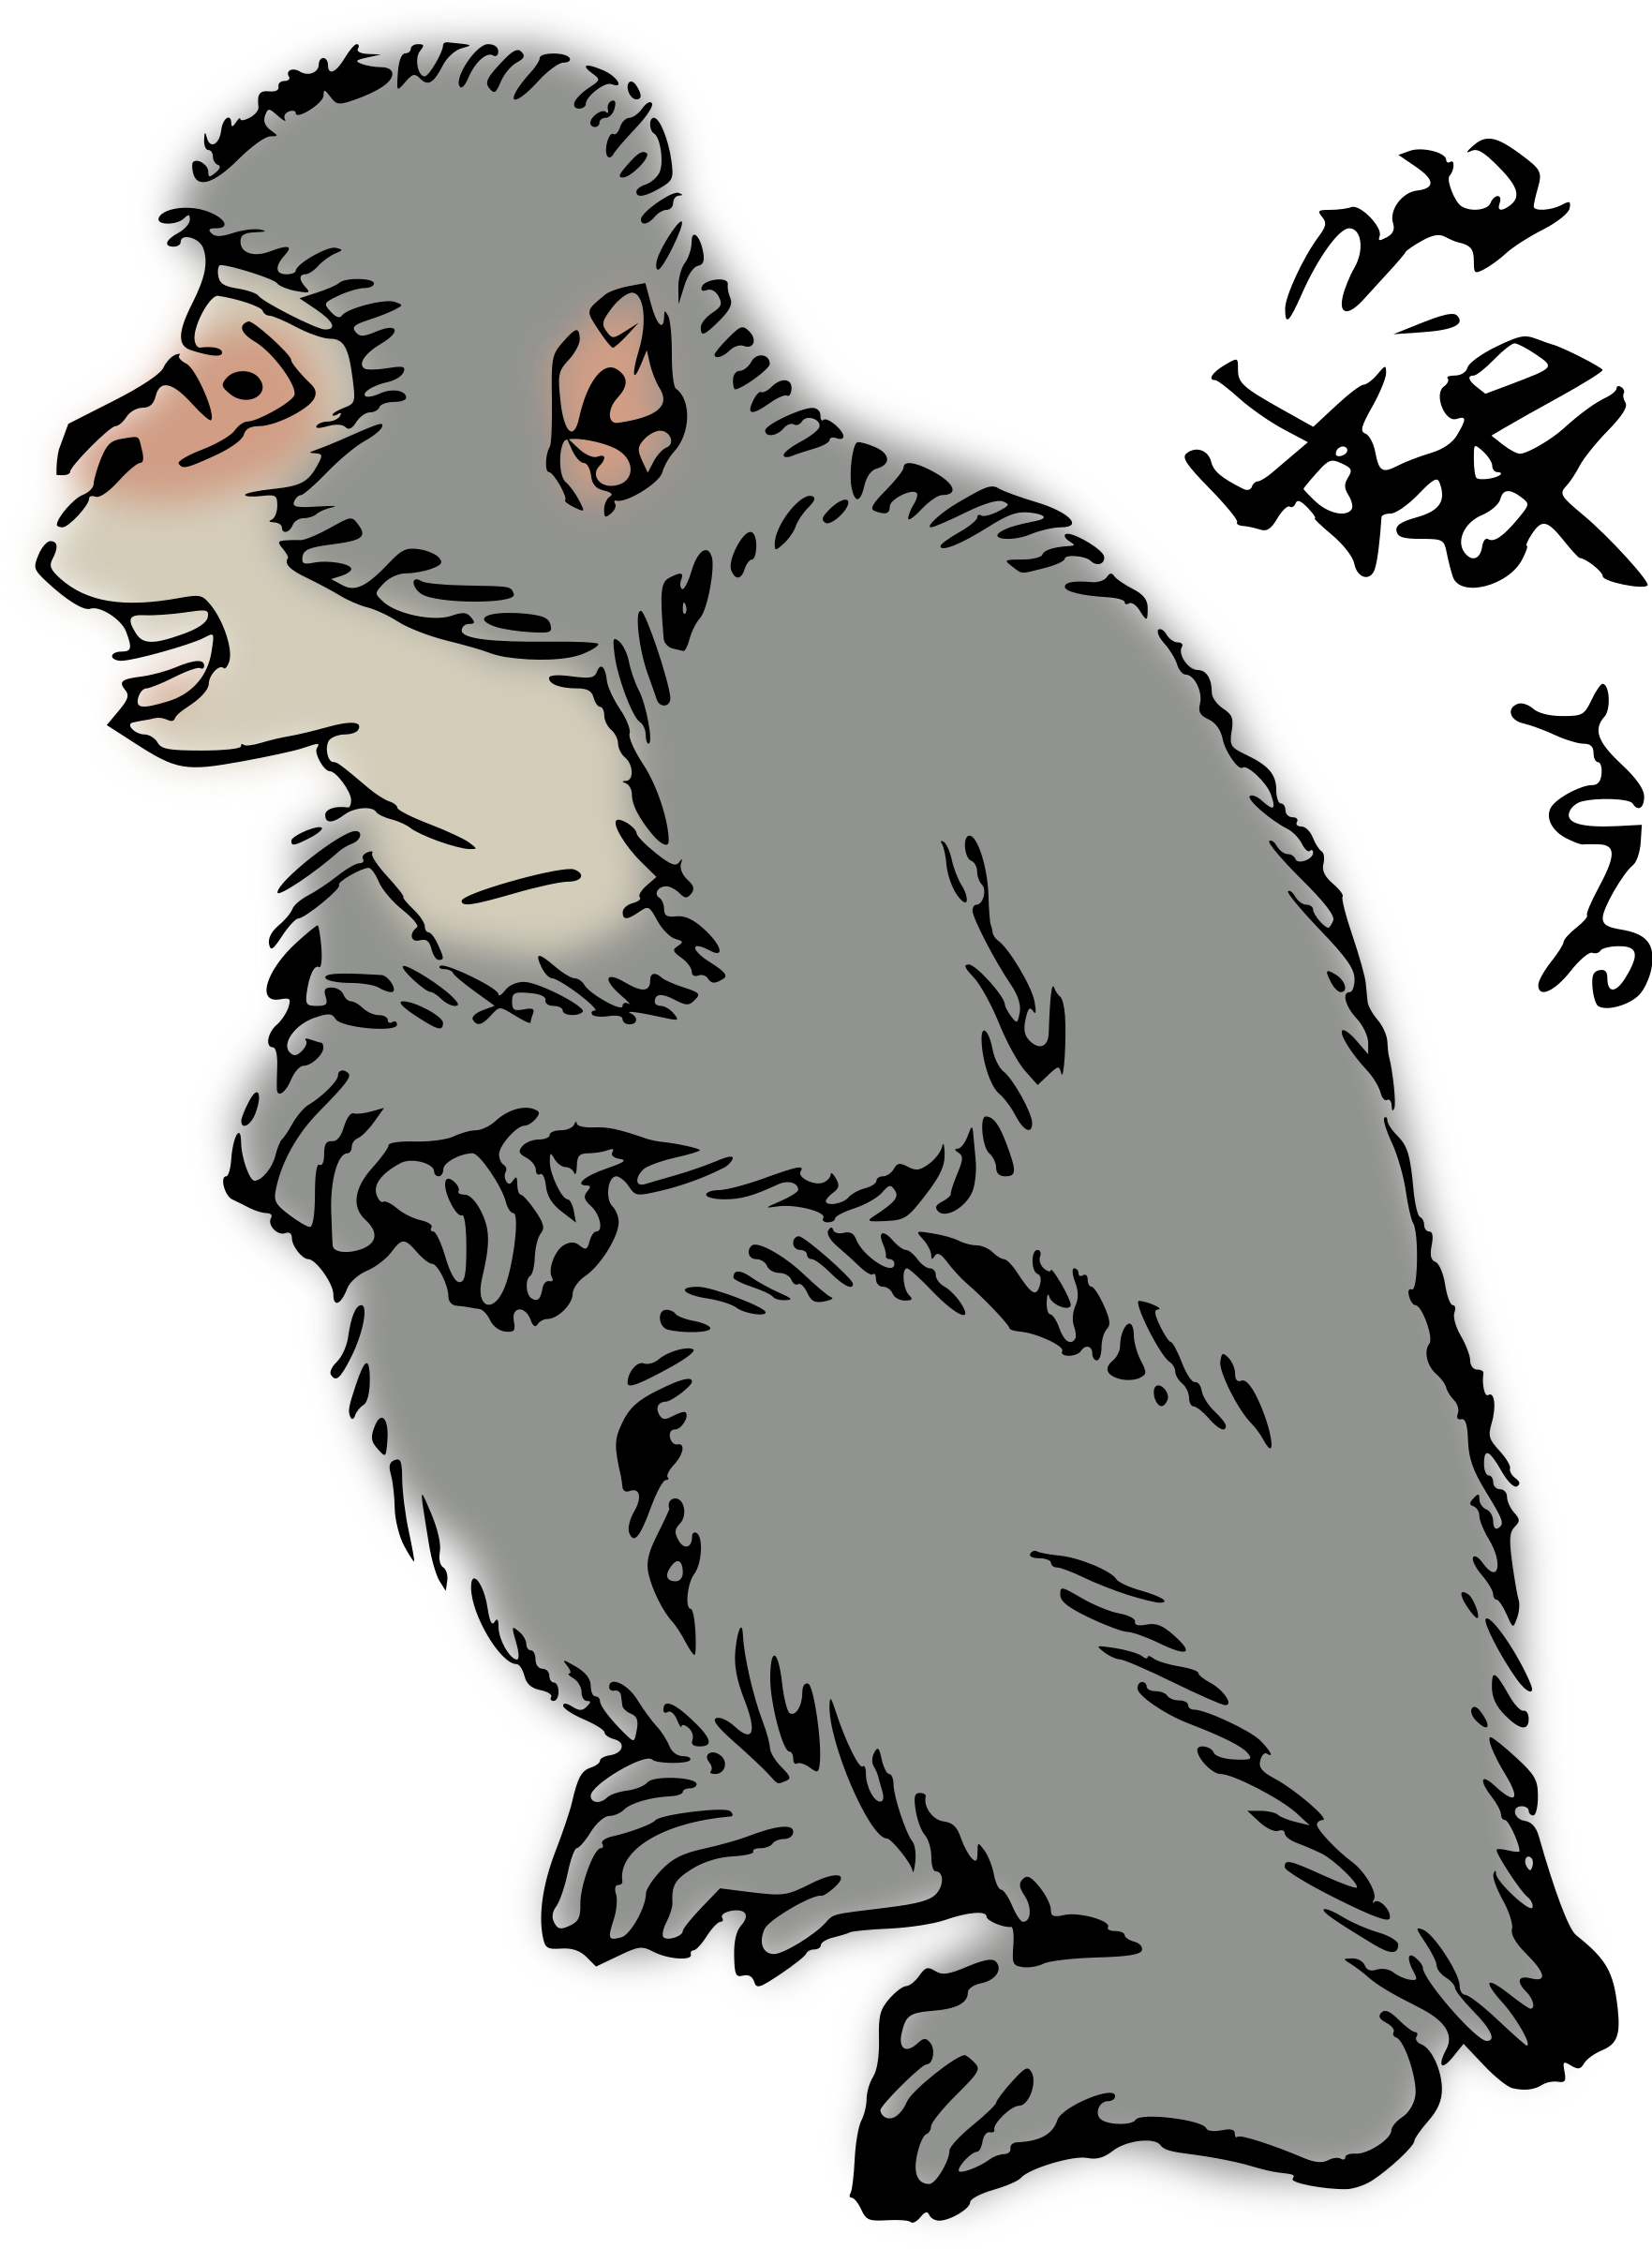 Japanese Macaque clipart #5, Download drawings